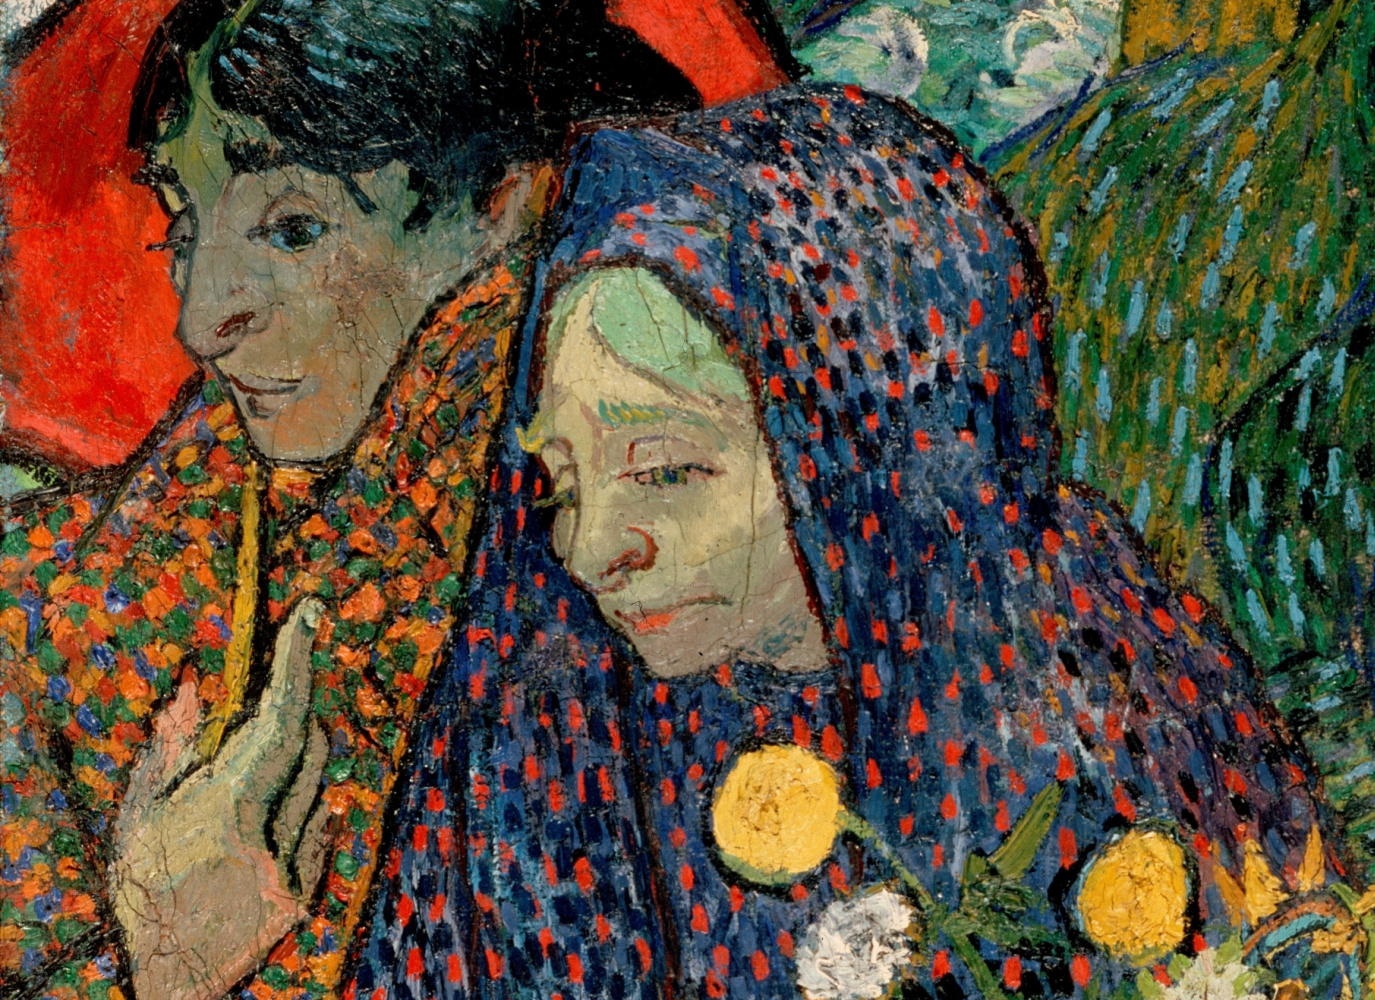 How Van Gogh paid for the care of his mentally ill sister after his death